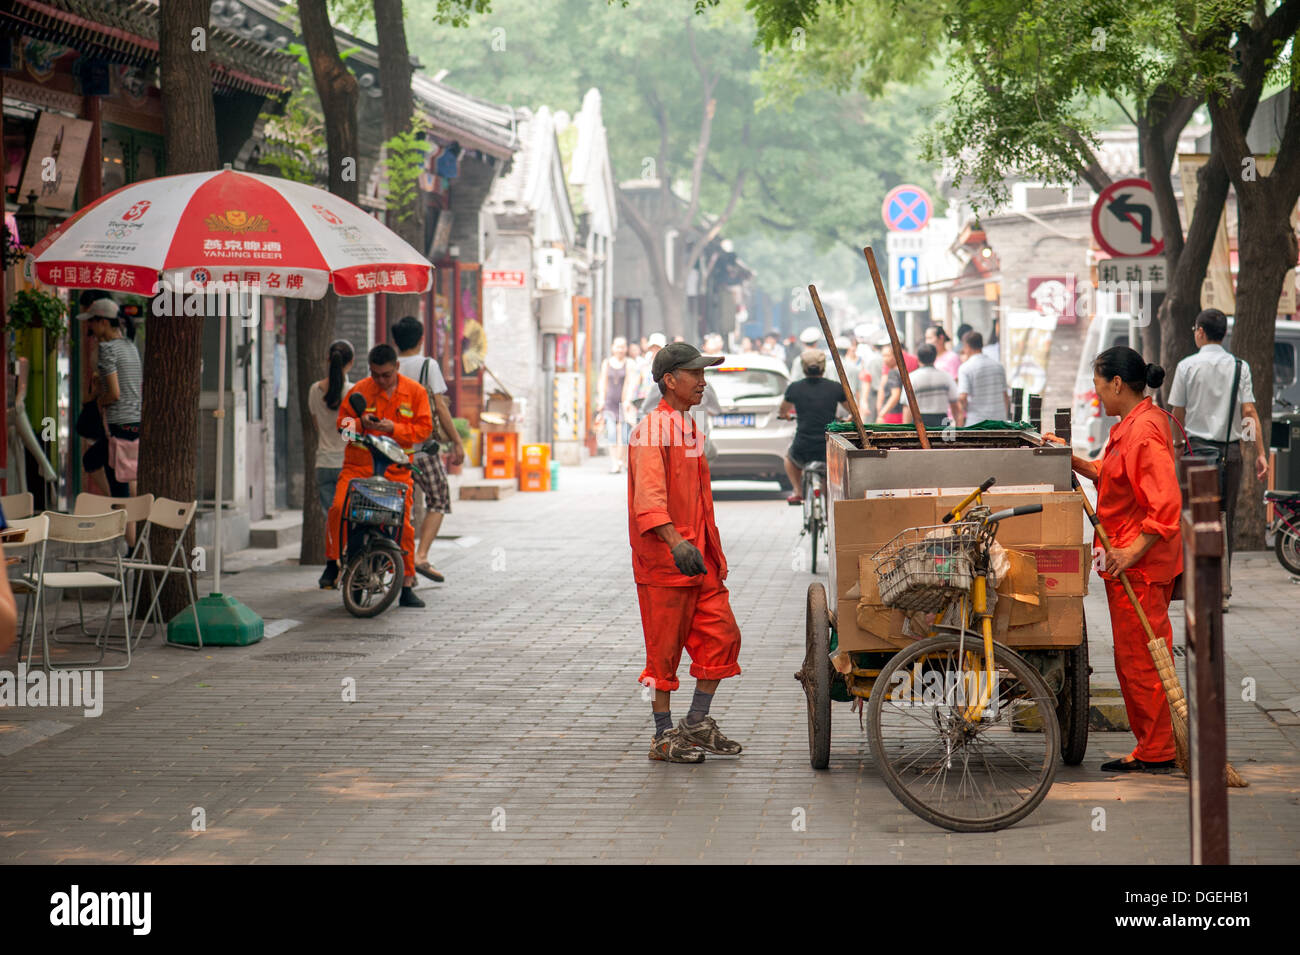 Sanitation workers cleaning the main street in the Jing Yang Hutong of Beijing. The Hutongs provide a glimps of life in Beijing. - Stock Image